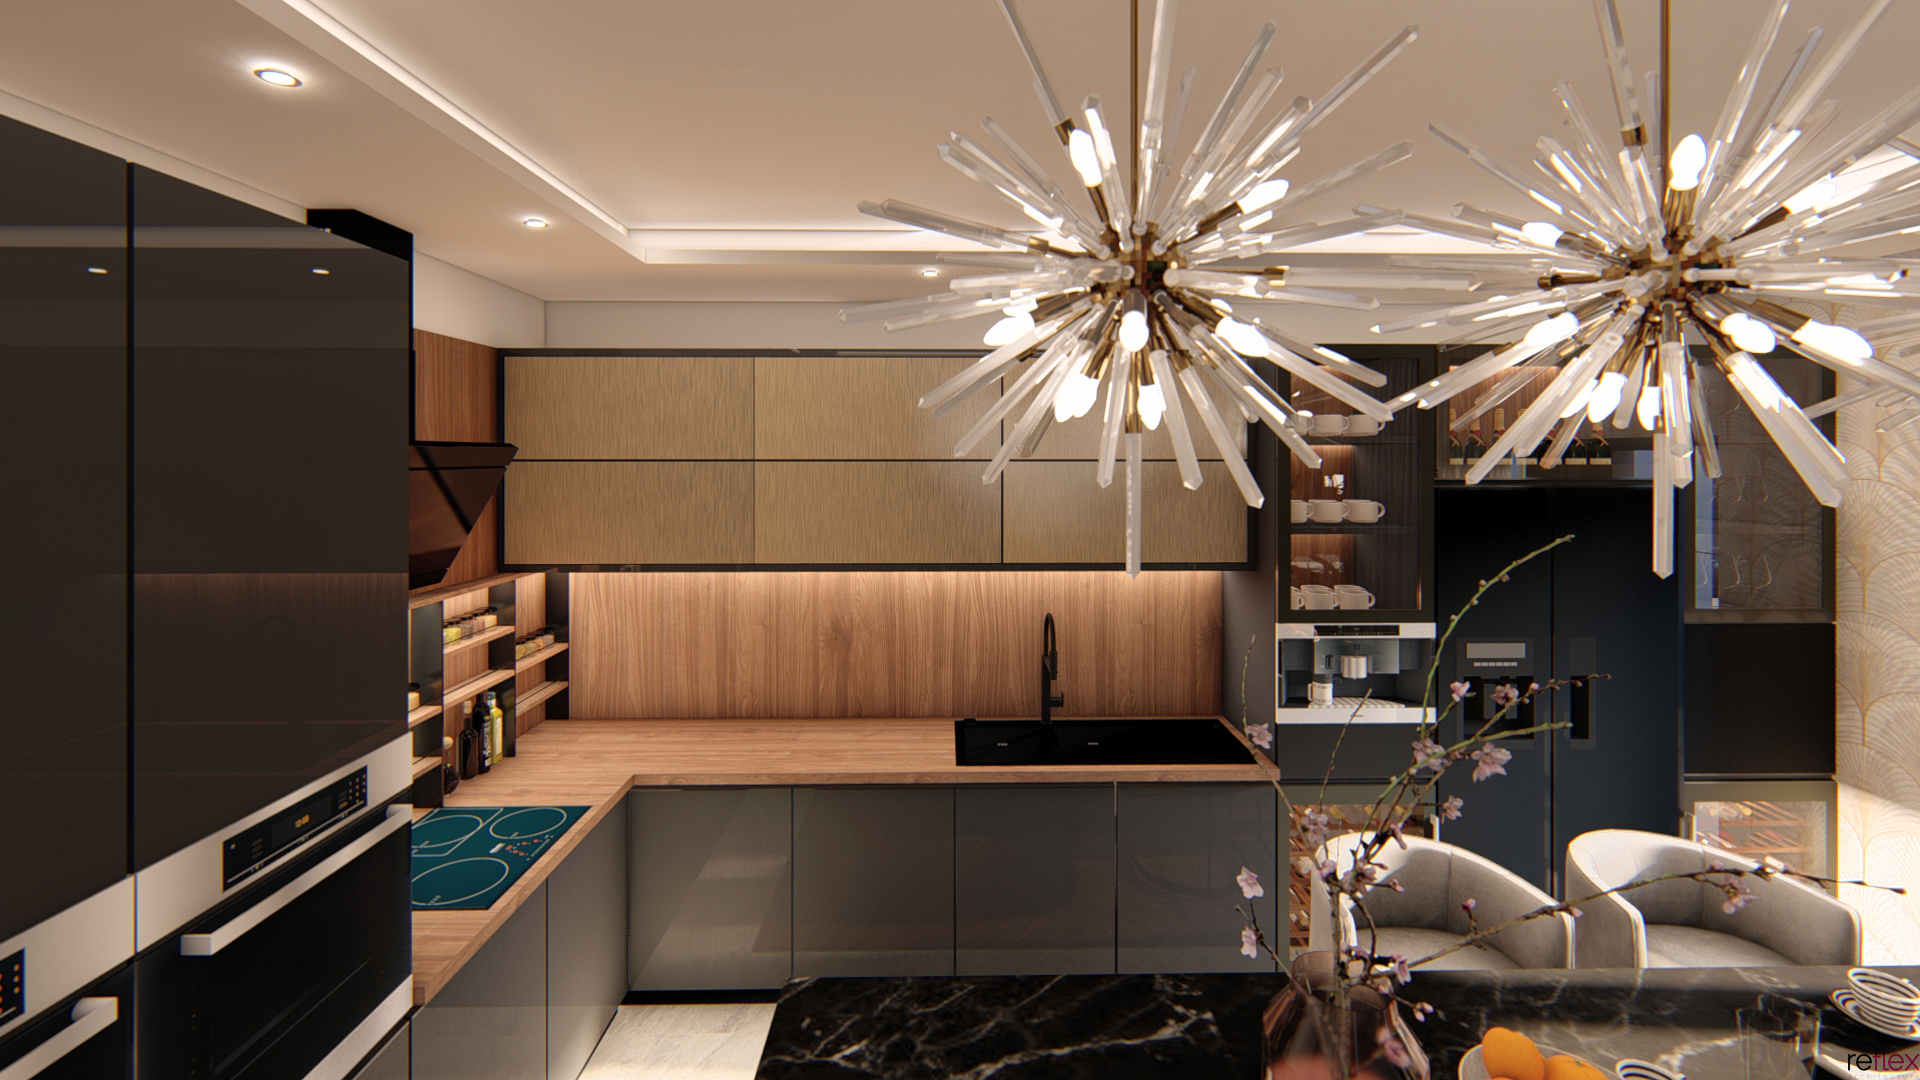 025 INTERIOR DESIGN HOUSE D